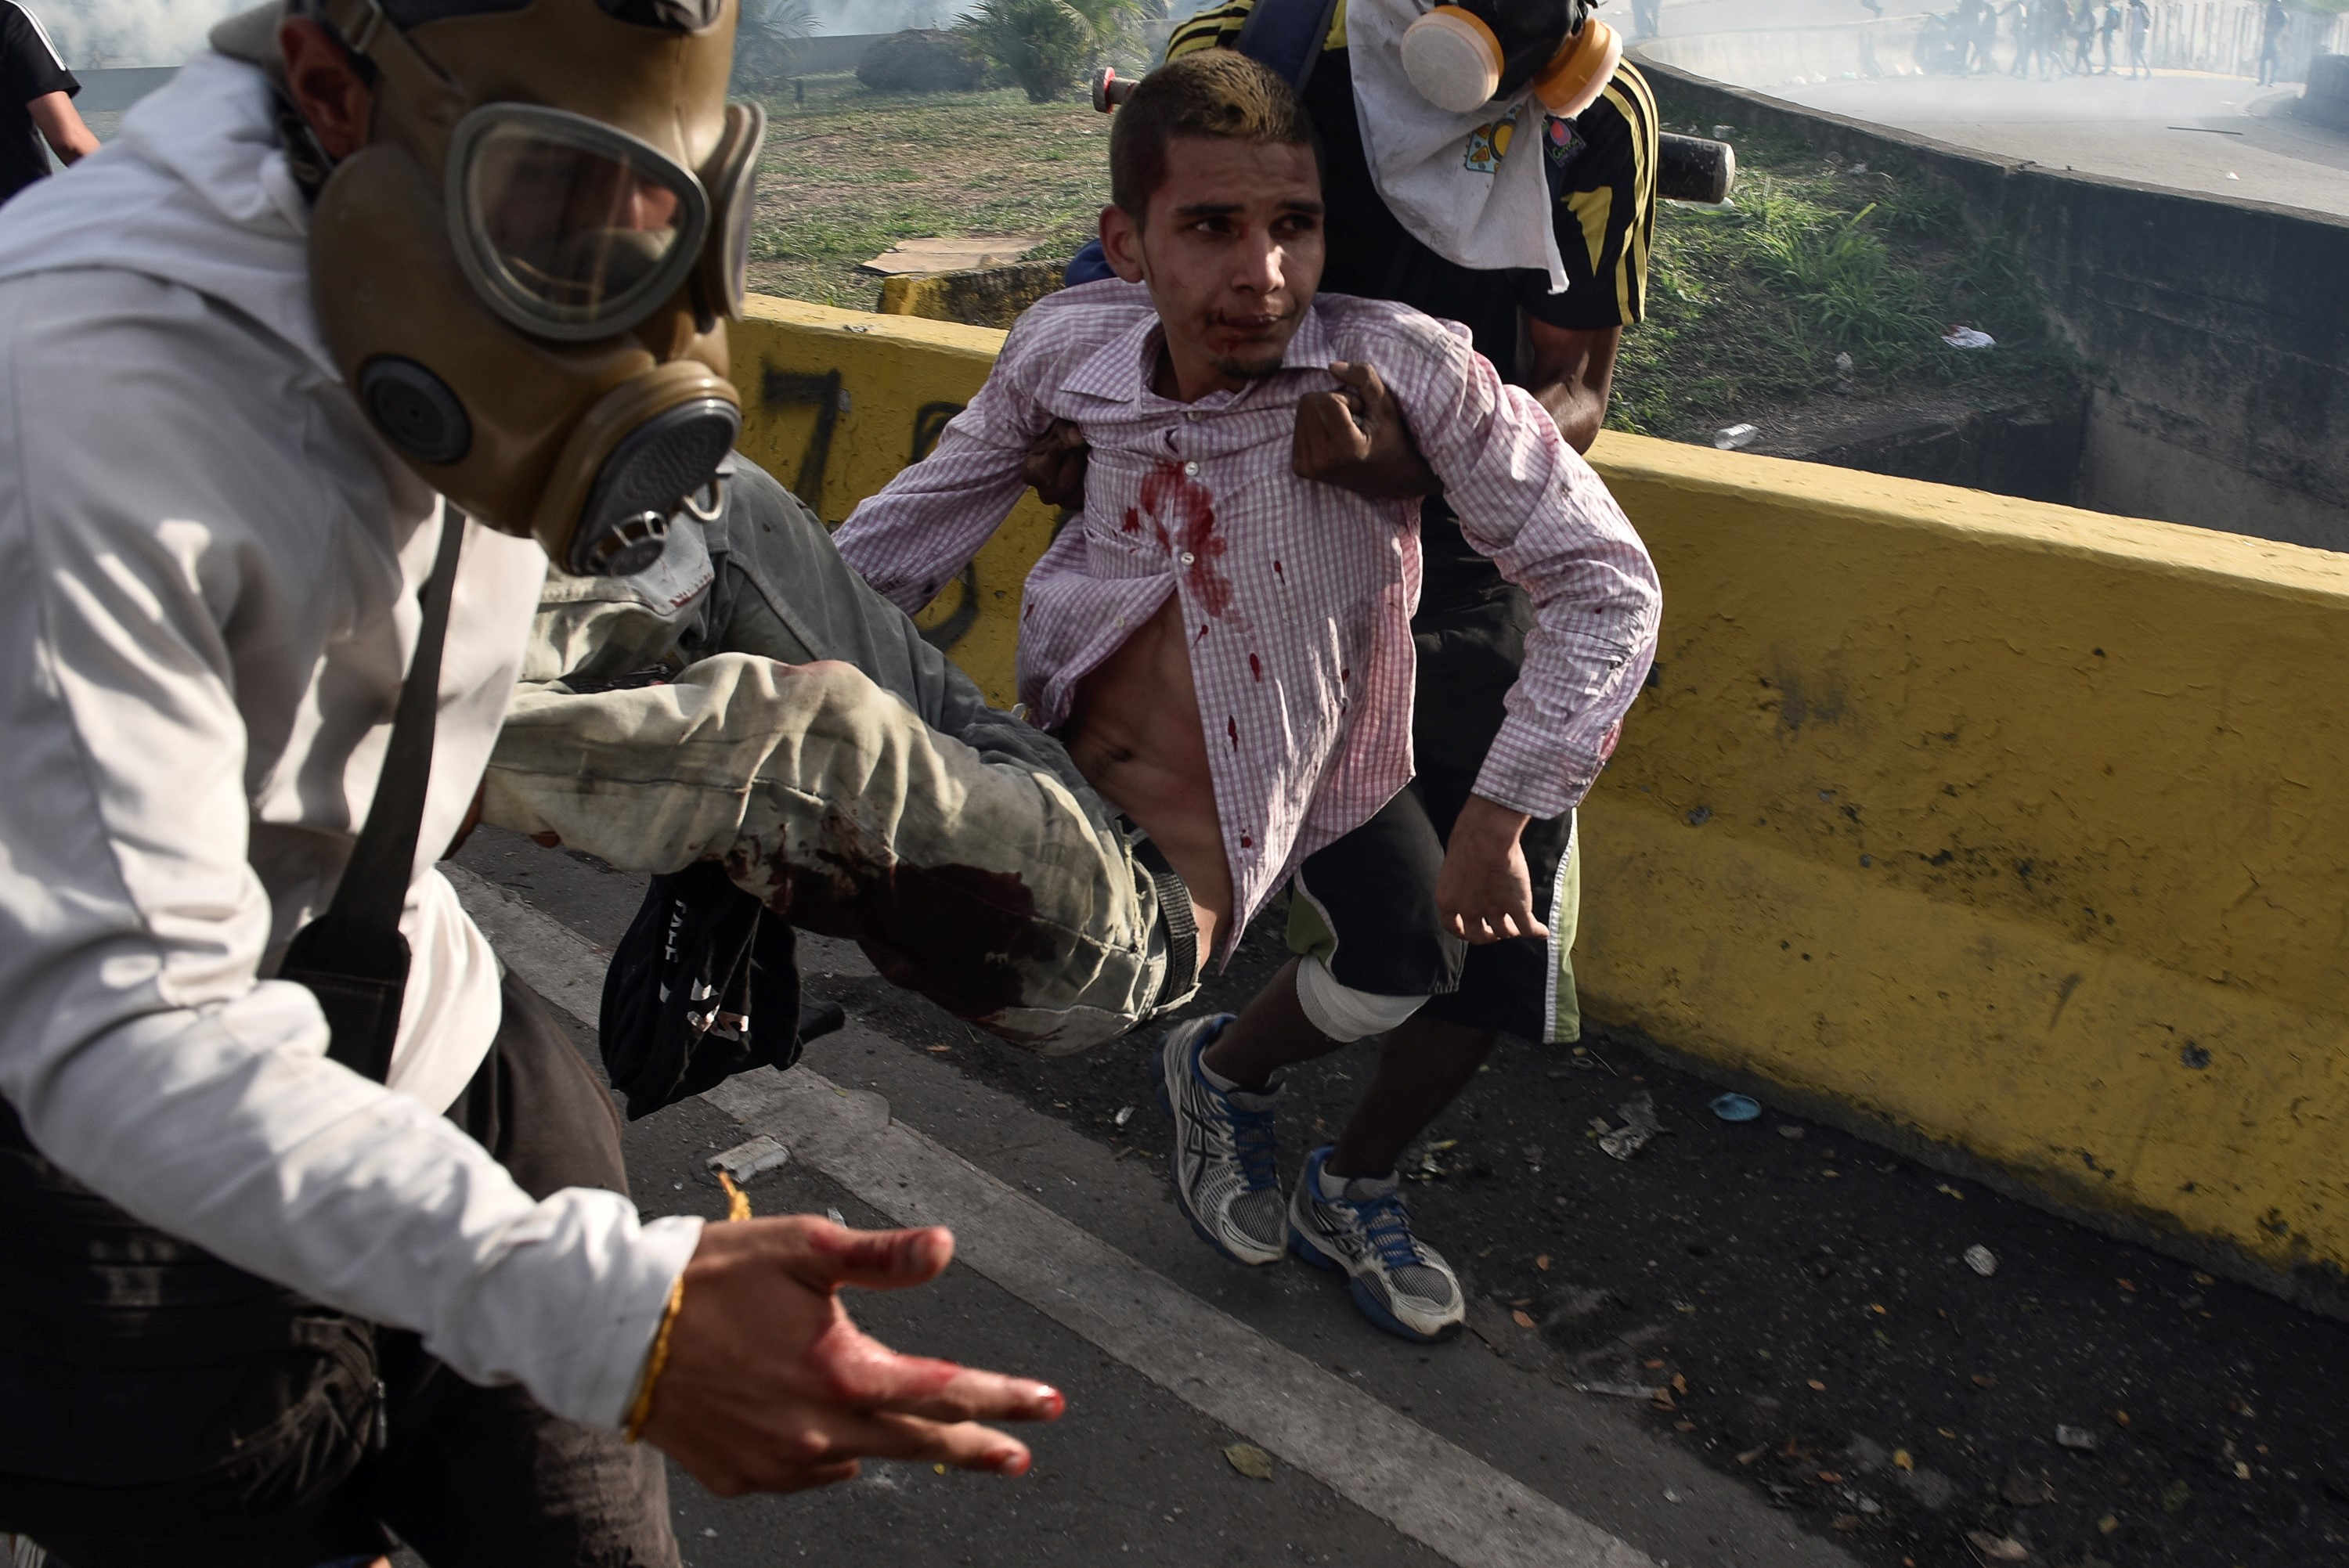 Demonstrators carry an injured protestor during a demonstration against the government of Nicolas Maduro in Caracas on May 31, 2017.